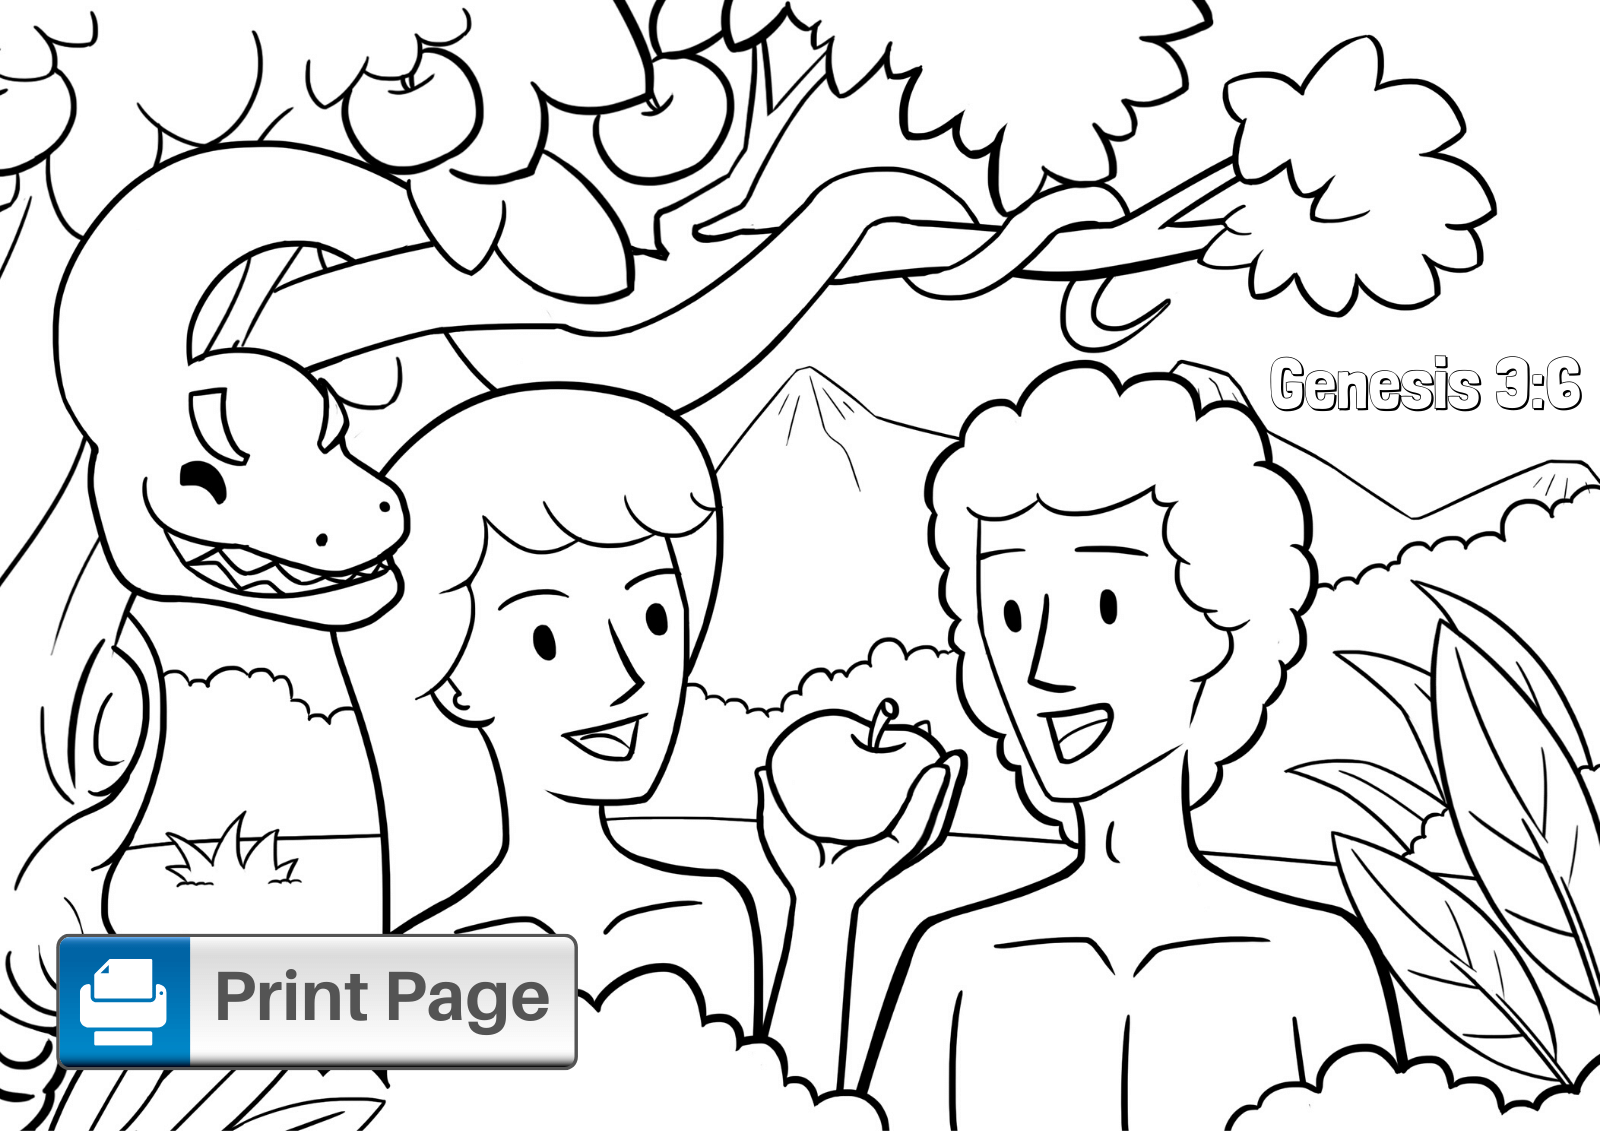 Garden of Eden Coloring Page